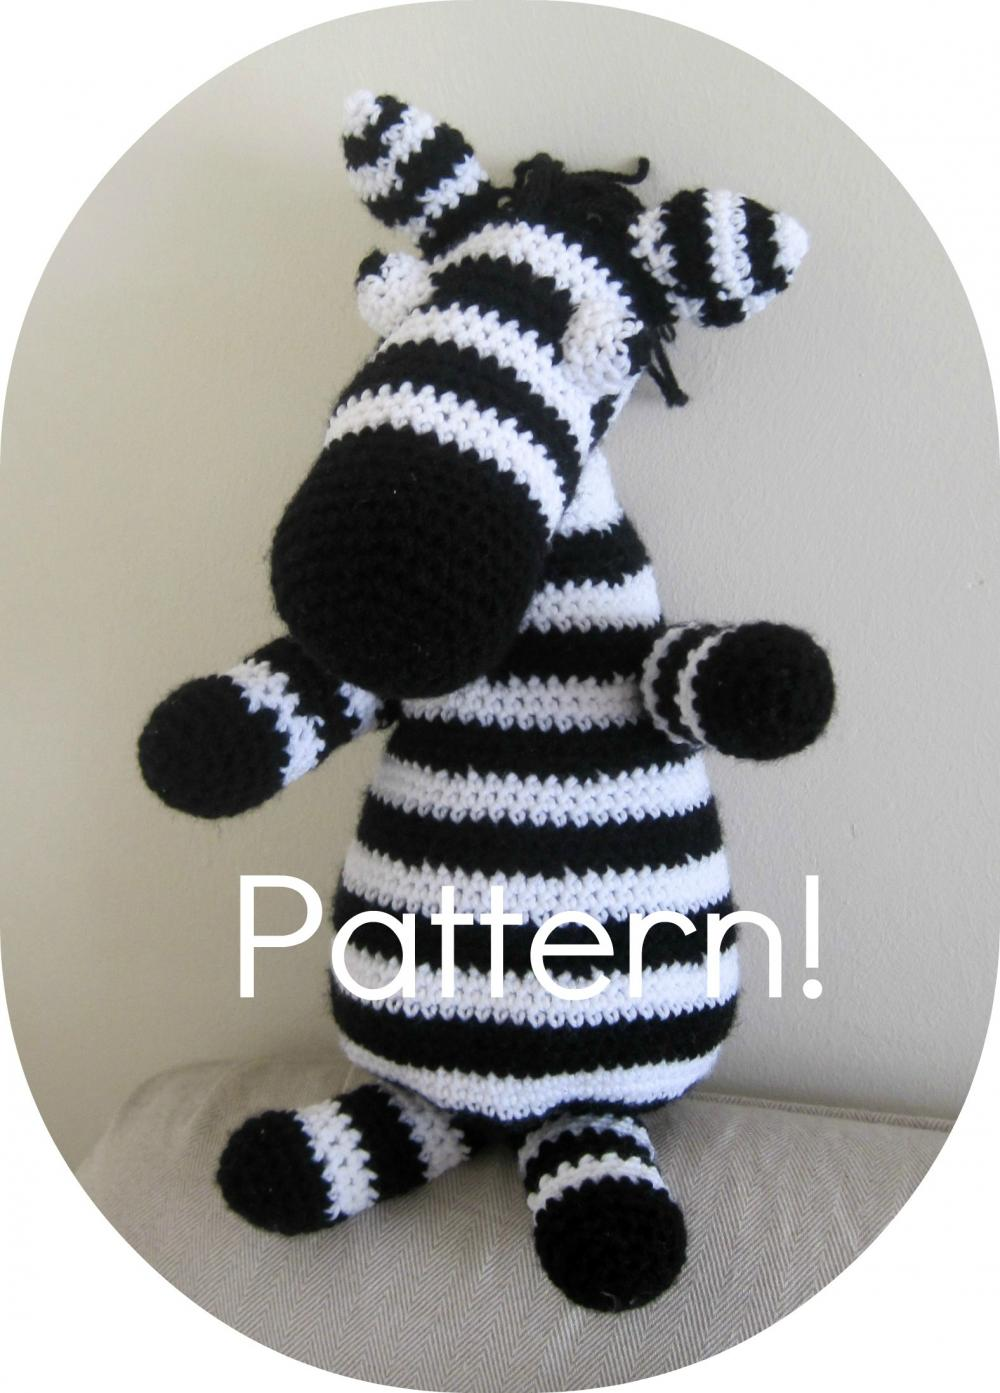 Crochet Patterns Zebra : pattern zebra amigurumi toy crochet tutorial pdf crochet pattern zebra ...